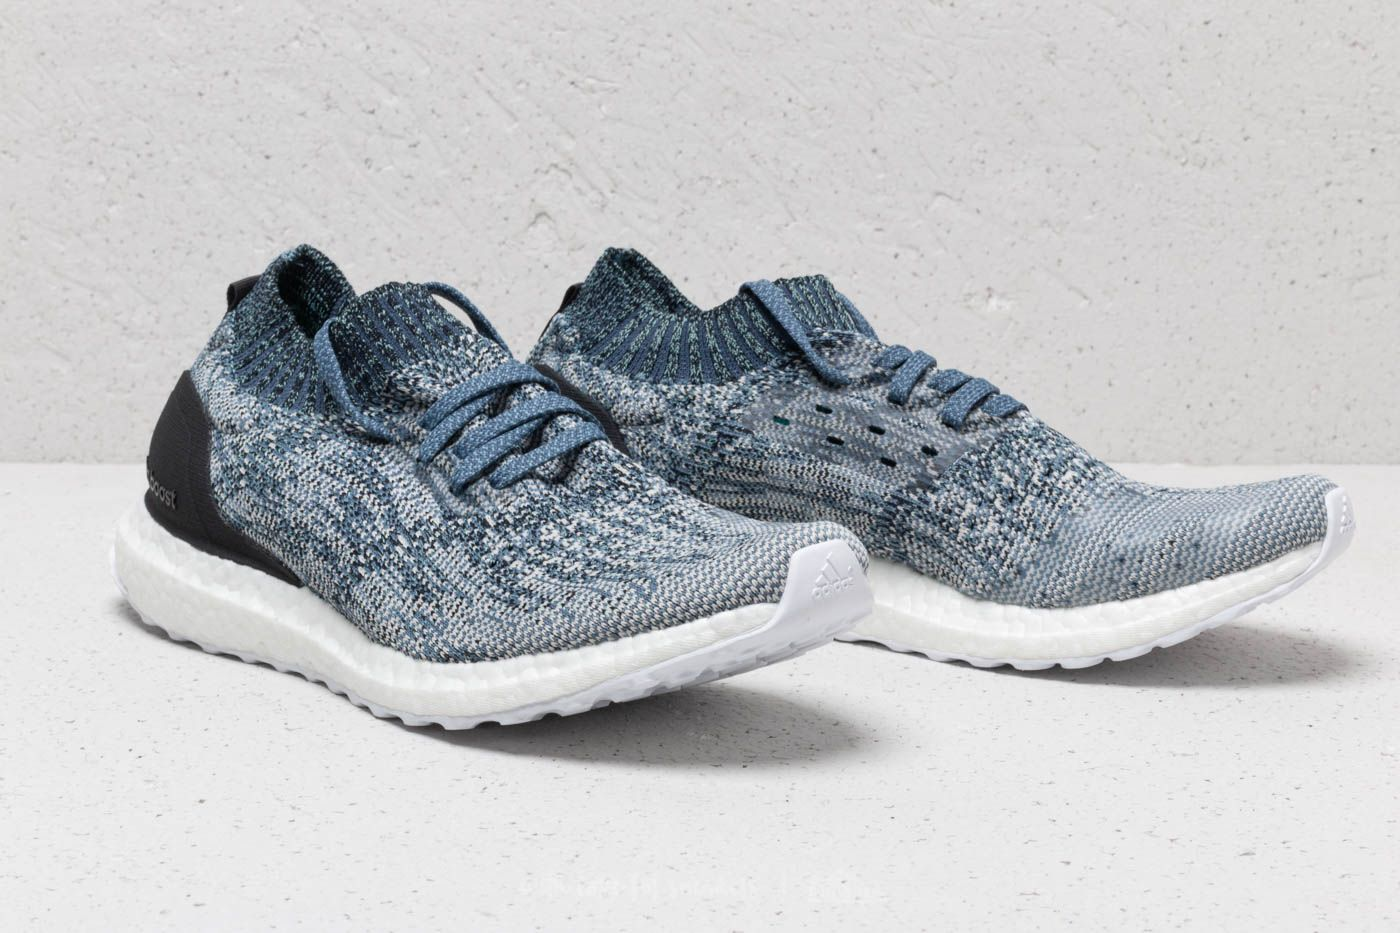 69b8c19e608 ... ultra boost uncaged crystal 50f16 eae5e 50% off adidas ultraboost  uncaged parley raw grey chalk pearl blue spirit at a great ...